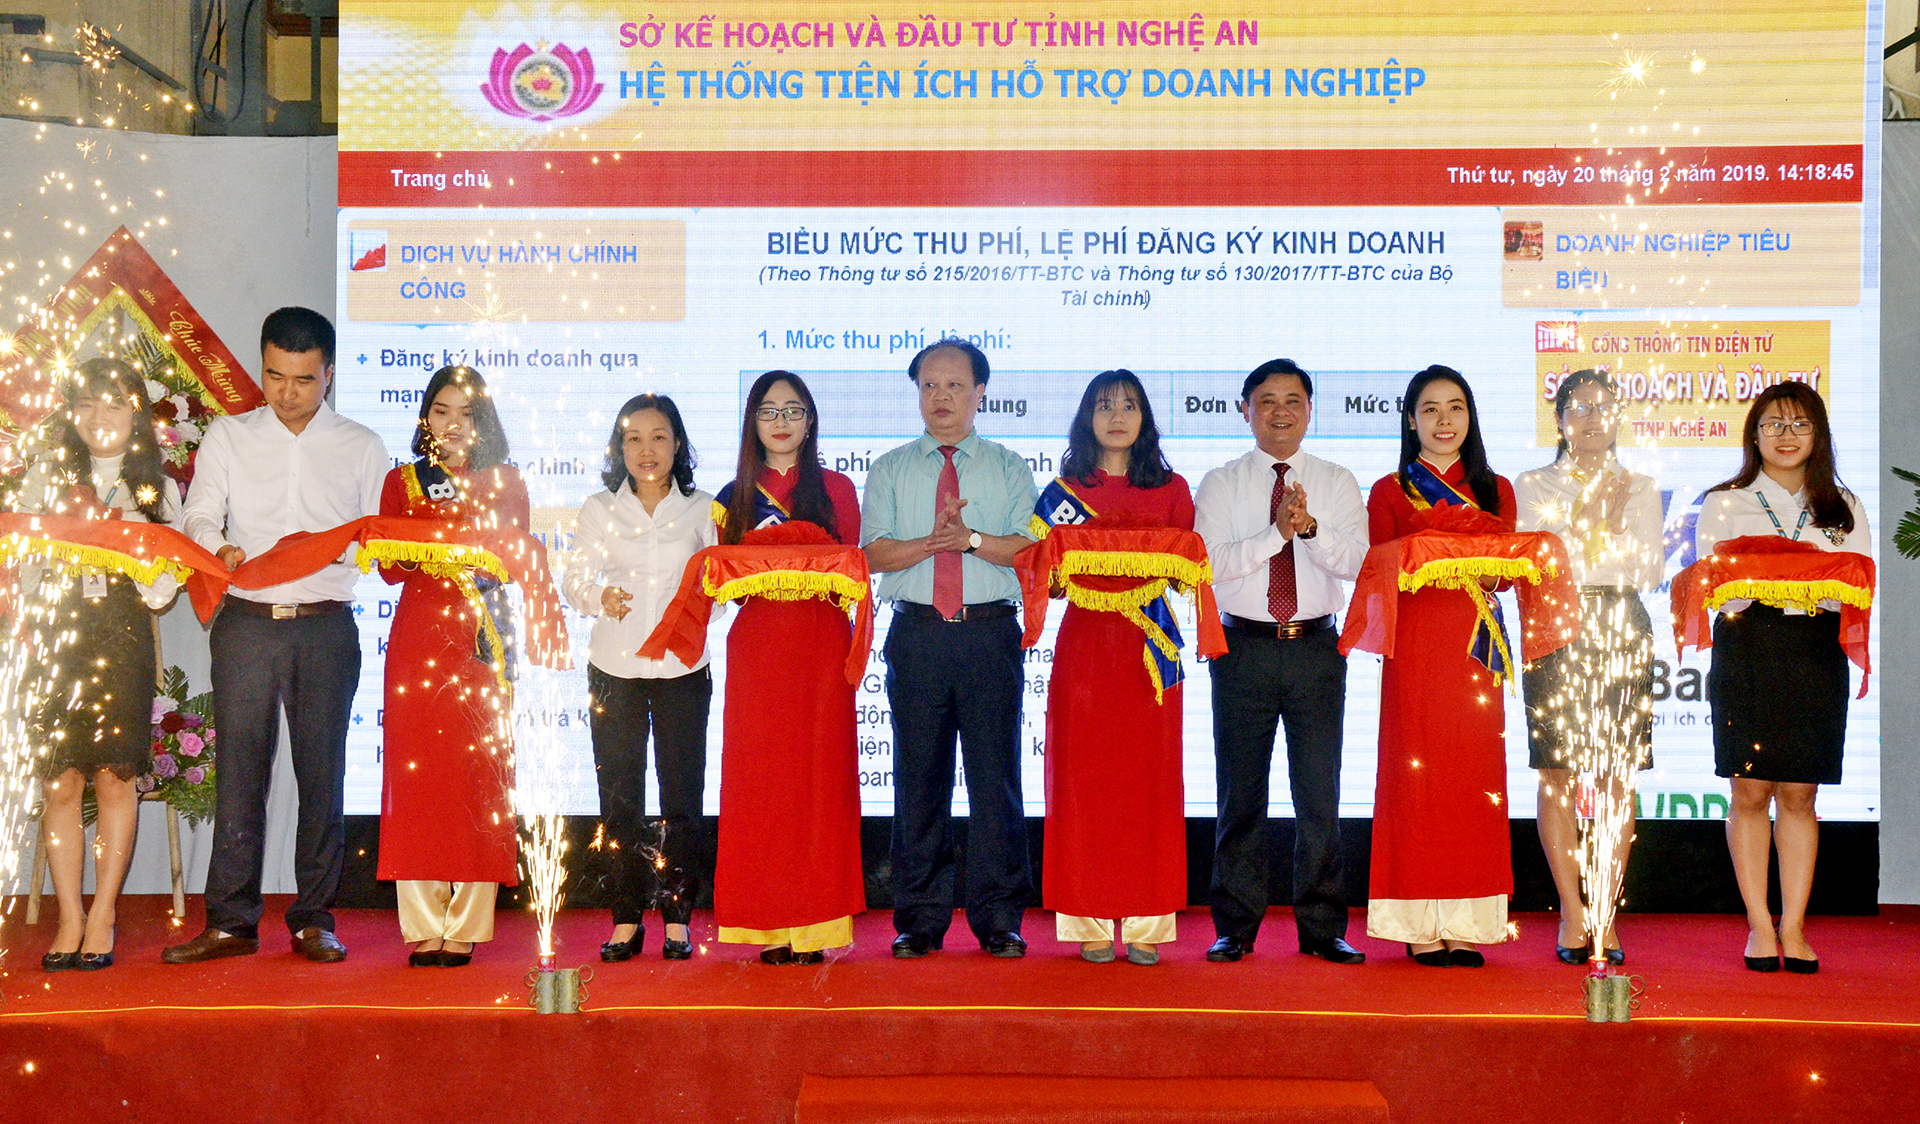 Chairman of Provincial People's Committee Thai Thanh Quy and delegates cut ribbons to open electronic information portal supporting enterprises.